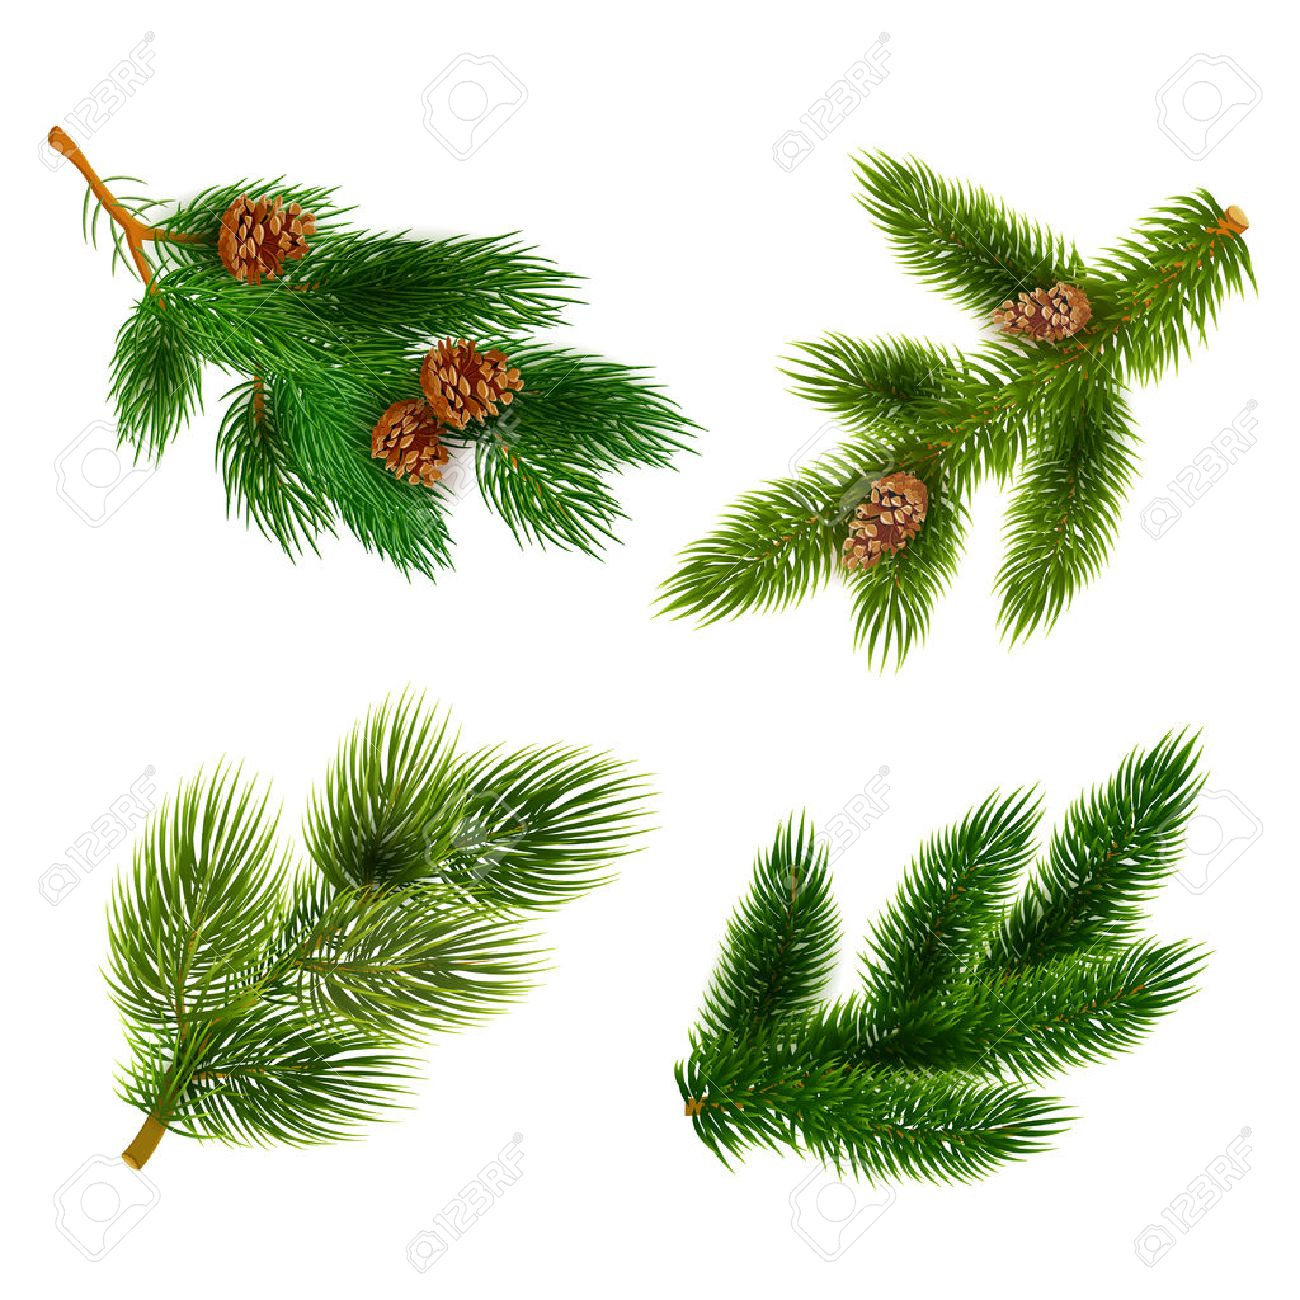 Classy Cones Chrismas Decorations Icons Setcomposition Banner Realistic Abstract Vector Pine Tree Branches Chrismas Decorations Icons Pine Tree Branches Cones houzz-03 Pine Tree Branch